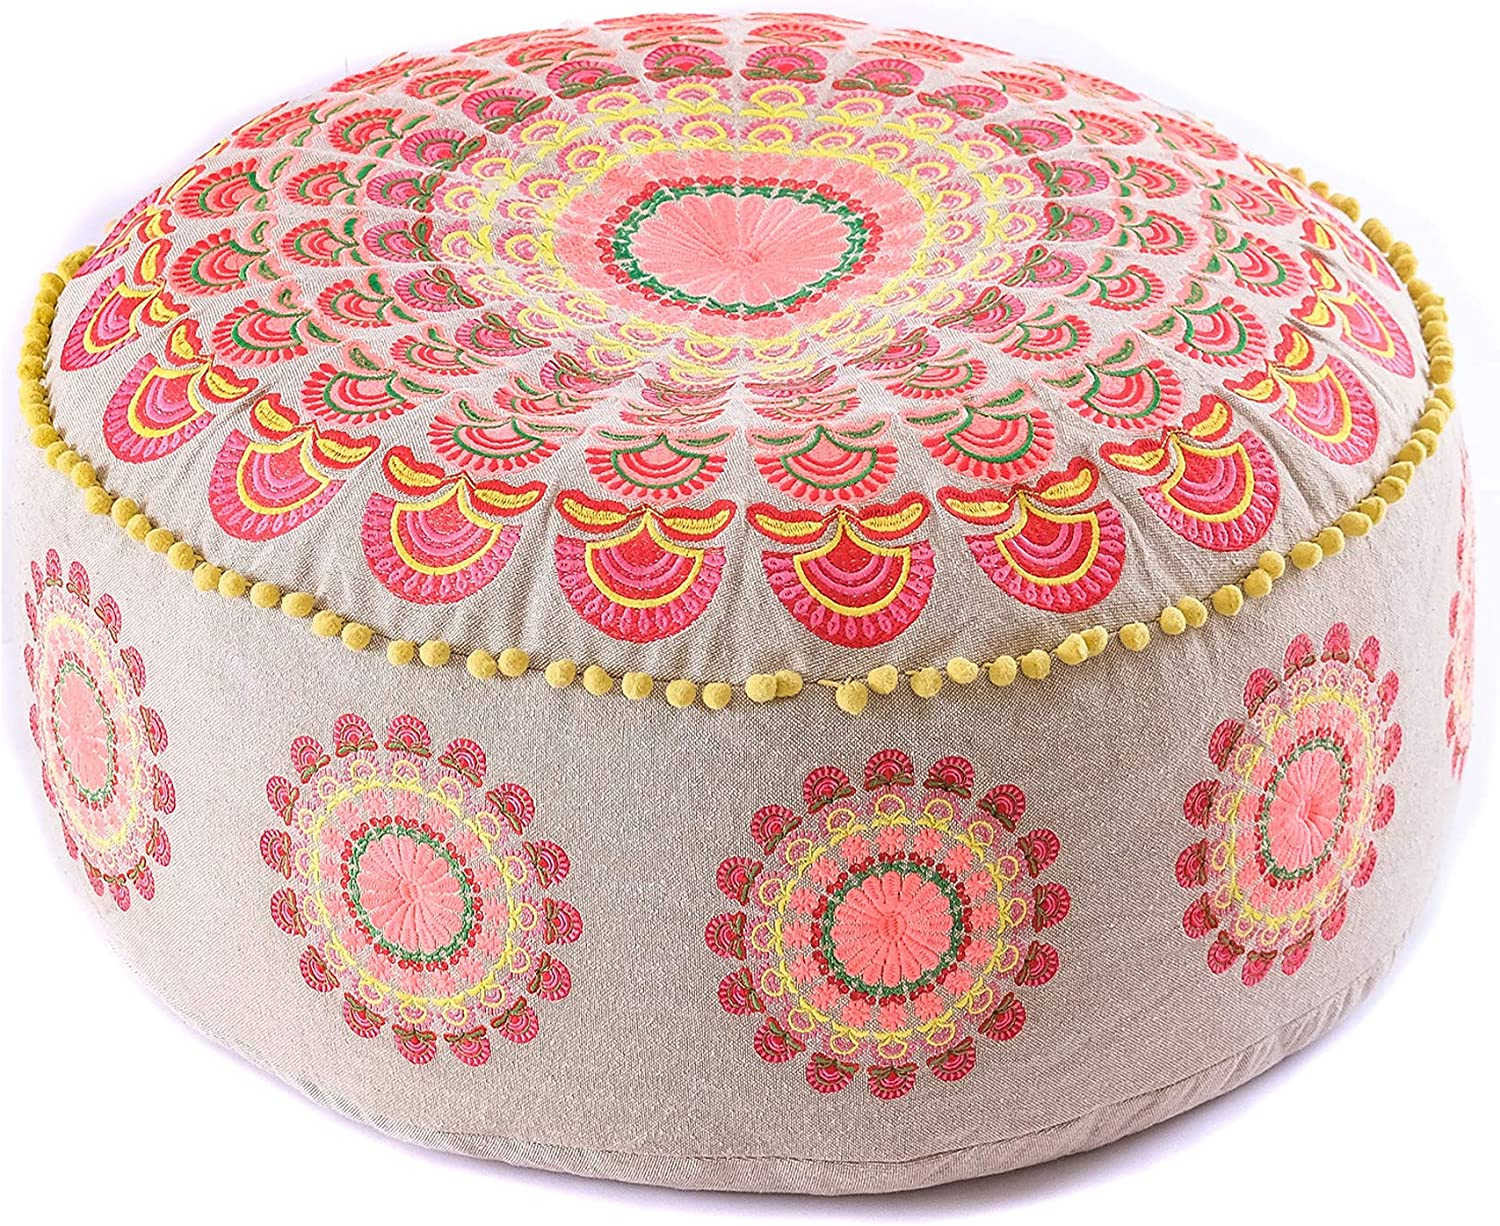 Only Cover Rajasthaniartdecor Round Pouf Cover Yellow Peacock Feather Round Mandala Pouf Cushion Cover Cotton Pouf Cover Seating for Living Dorm Room Size 32 Inches Pouf Cover